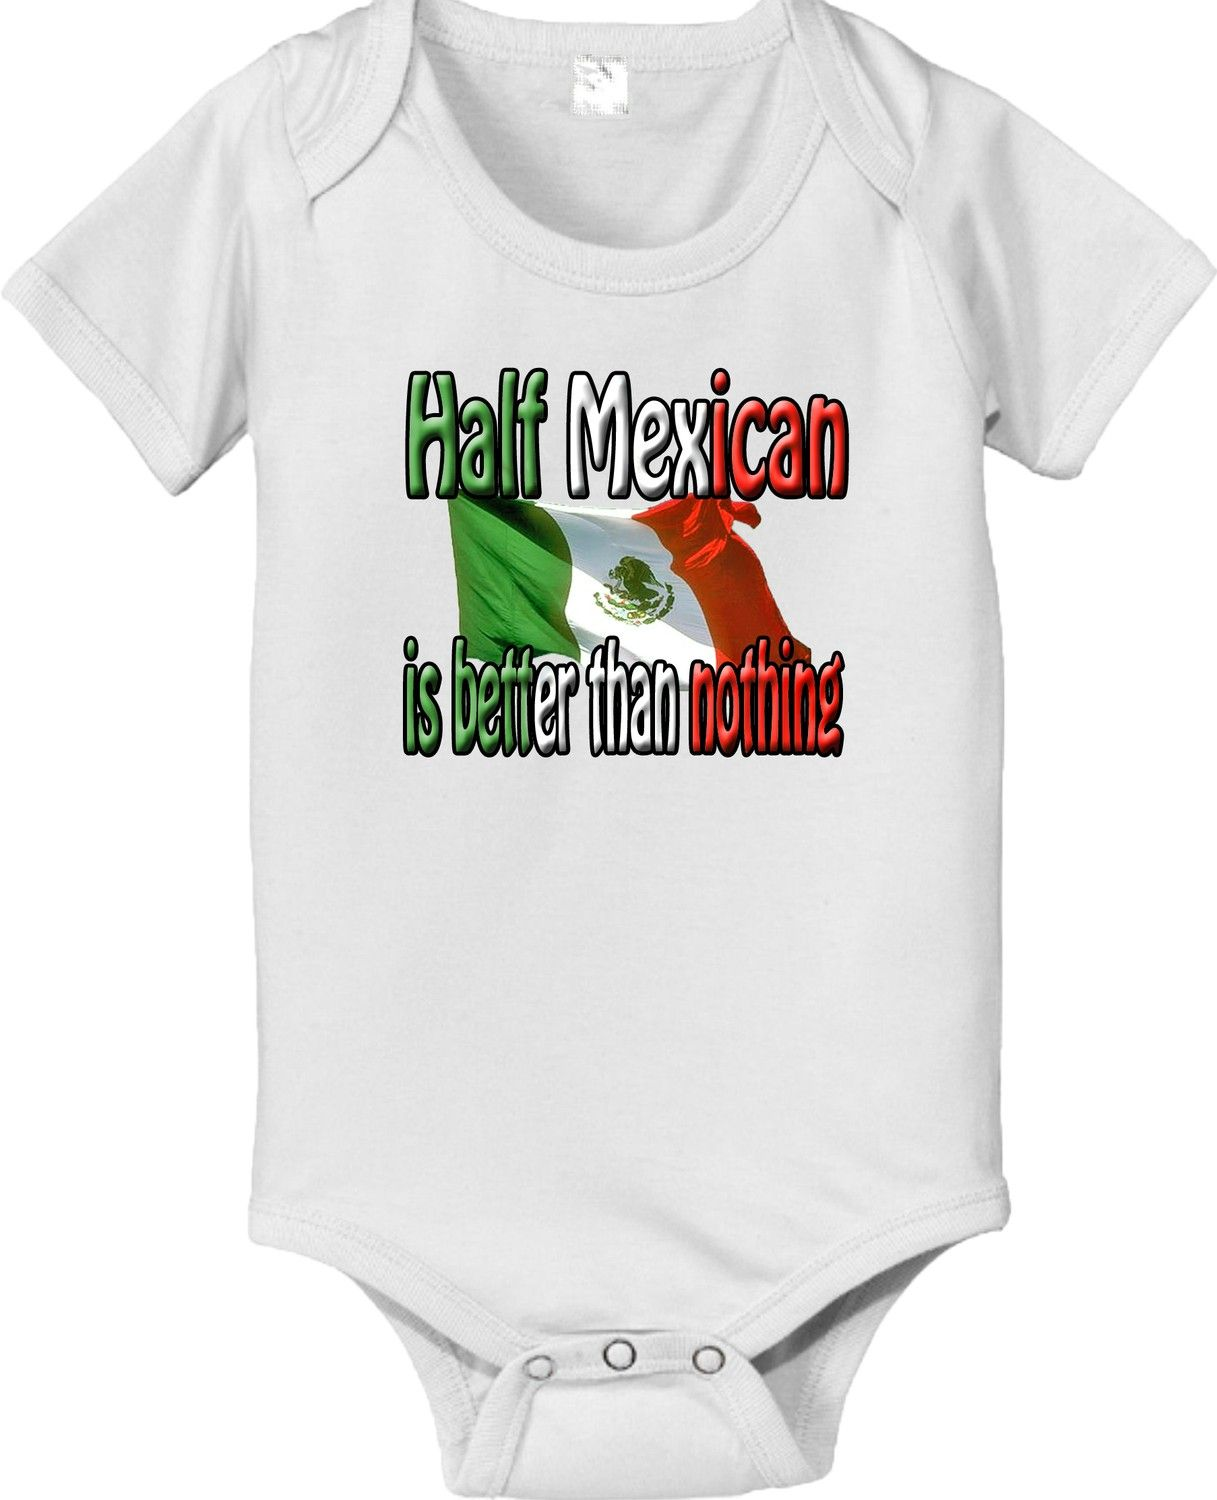 6bff05754 Half Mexican is better than nothing bodysuit by CustomTee....Omg!!! I  want.this for baby Caine! Haha